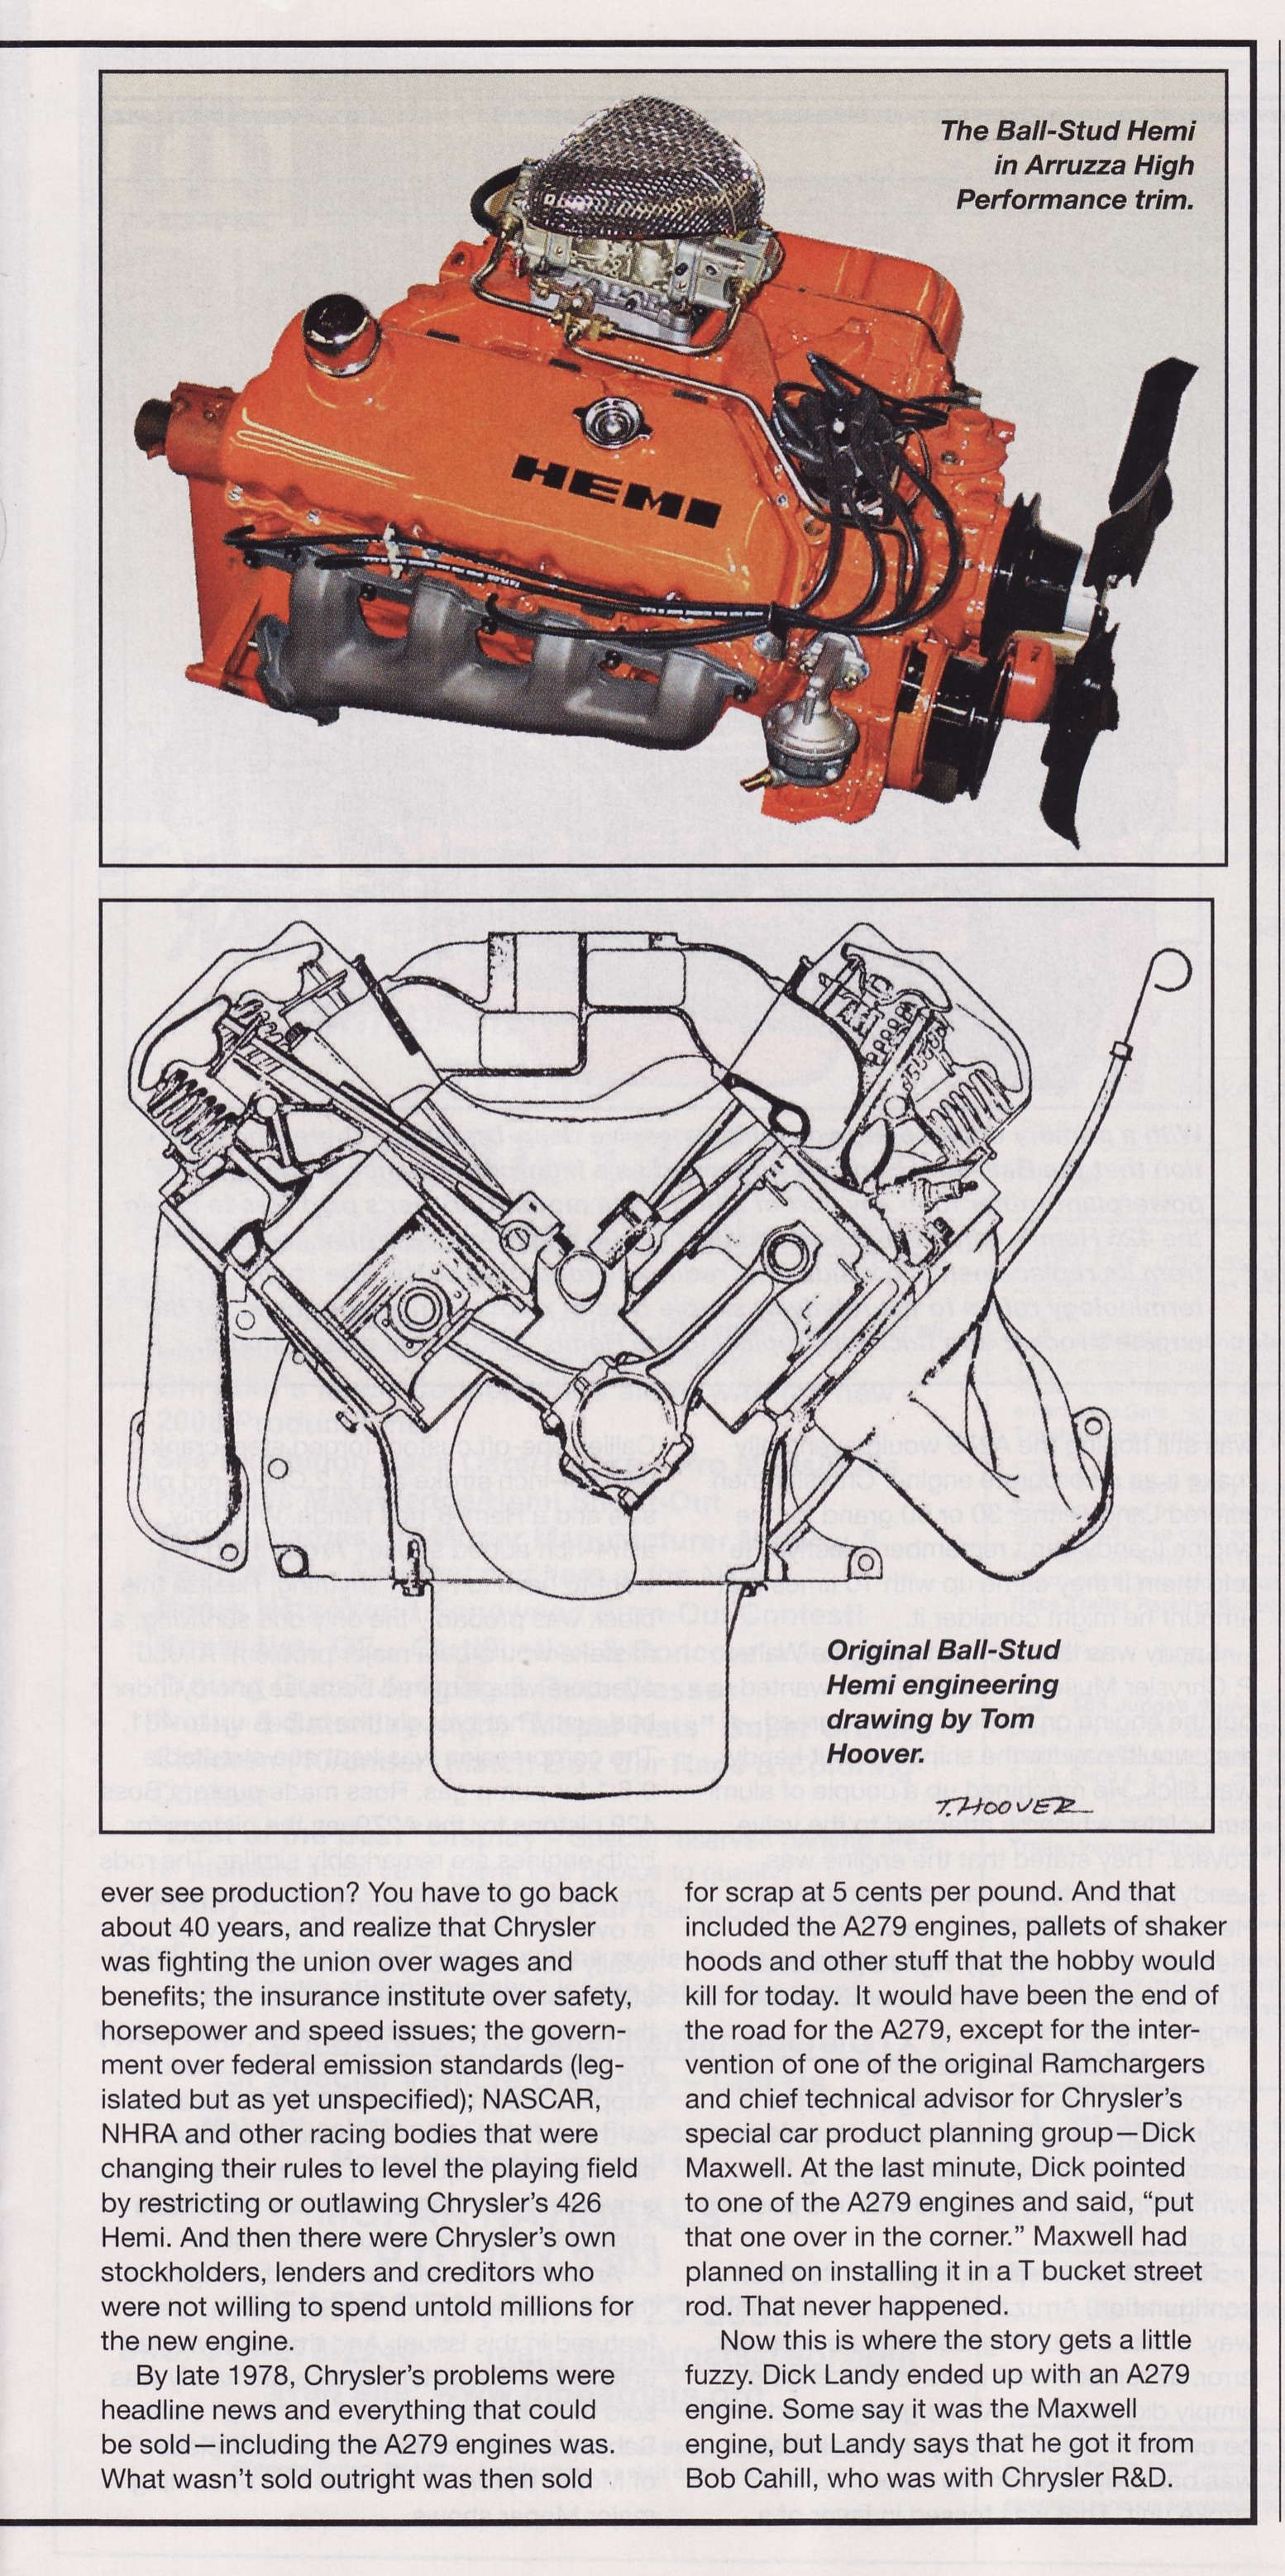 hight resolution of ball stud hemi page 2 hemi engine car engine chrysler hemi truck